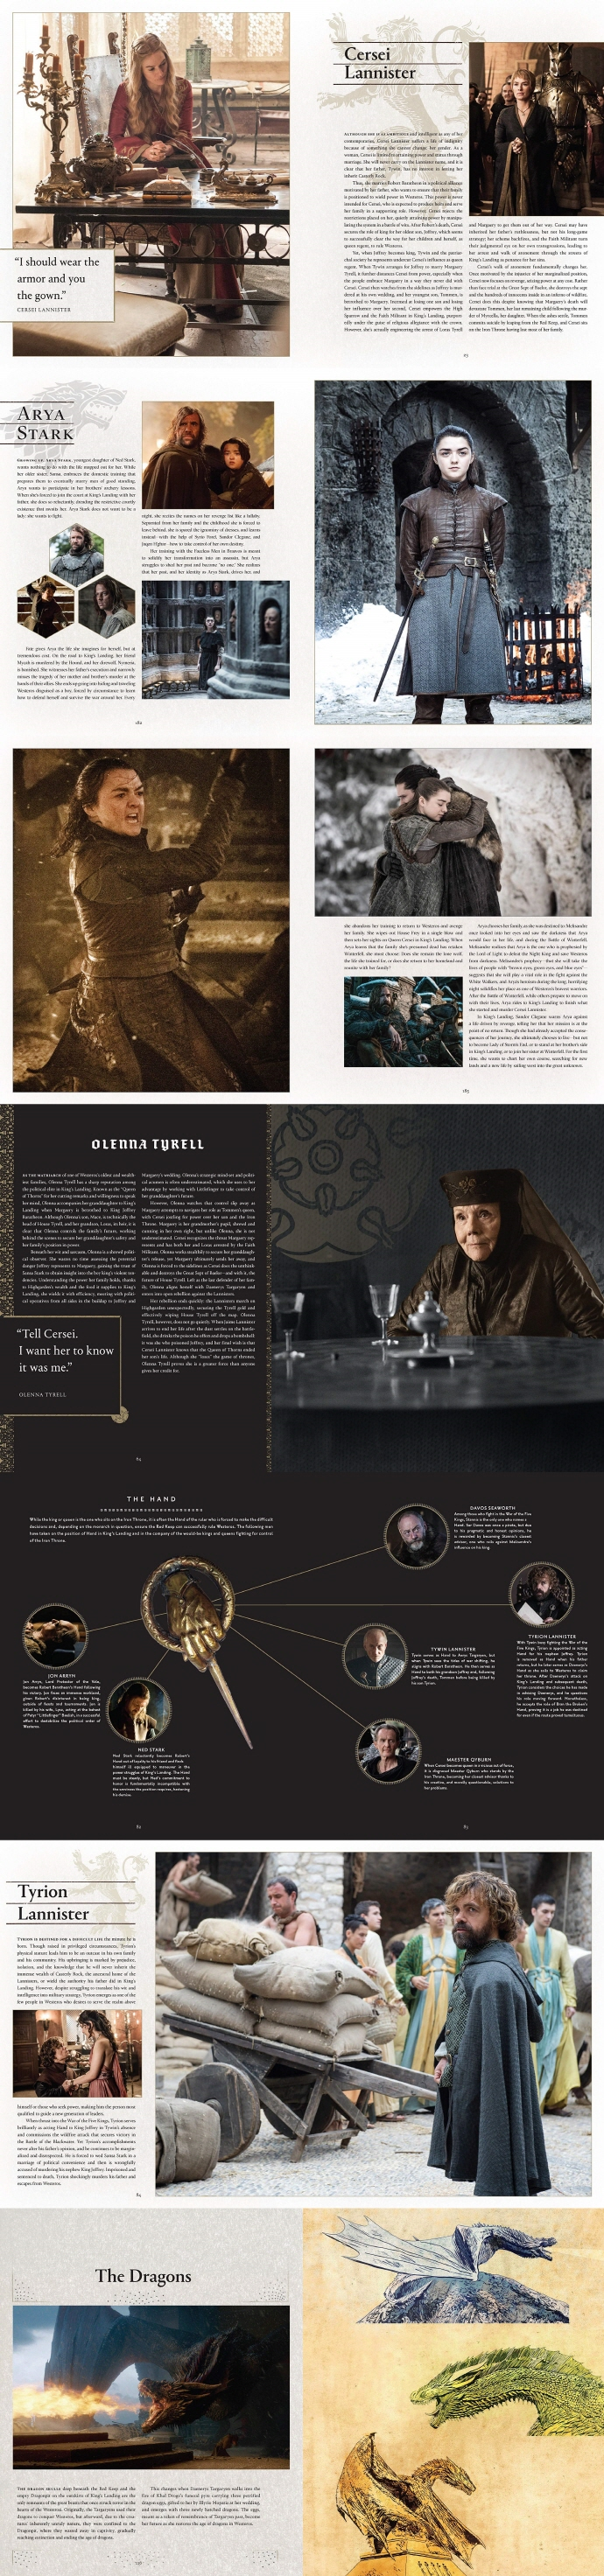 Game of Thrones: A Guide to Westeros and Beyond 도서 상세이미지